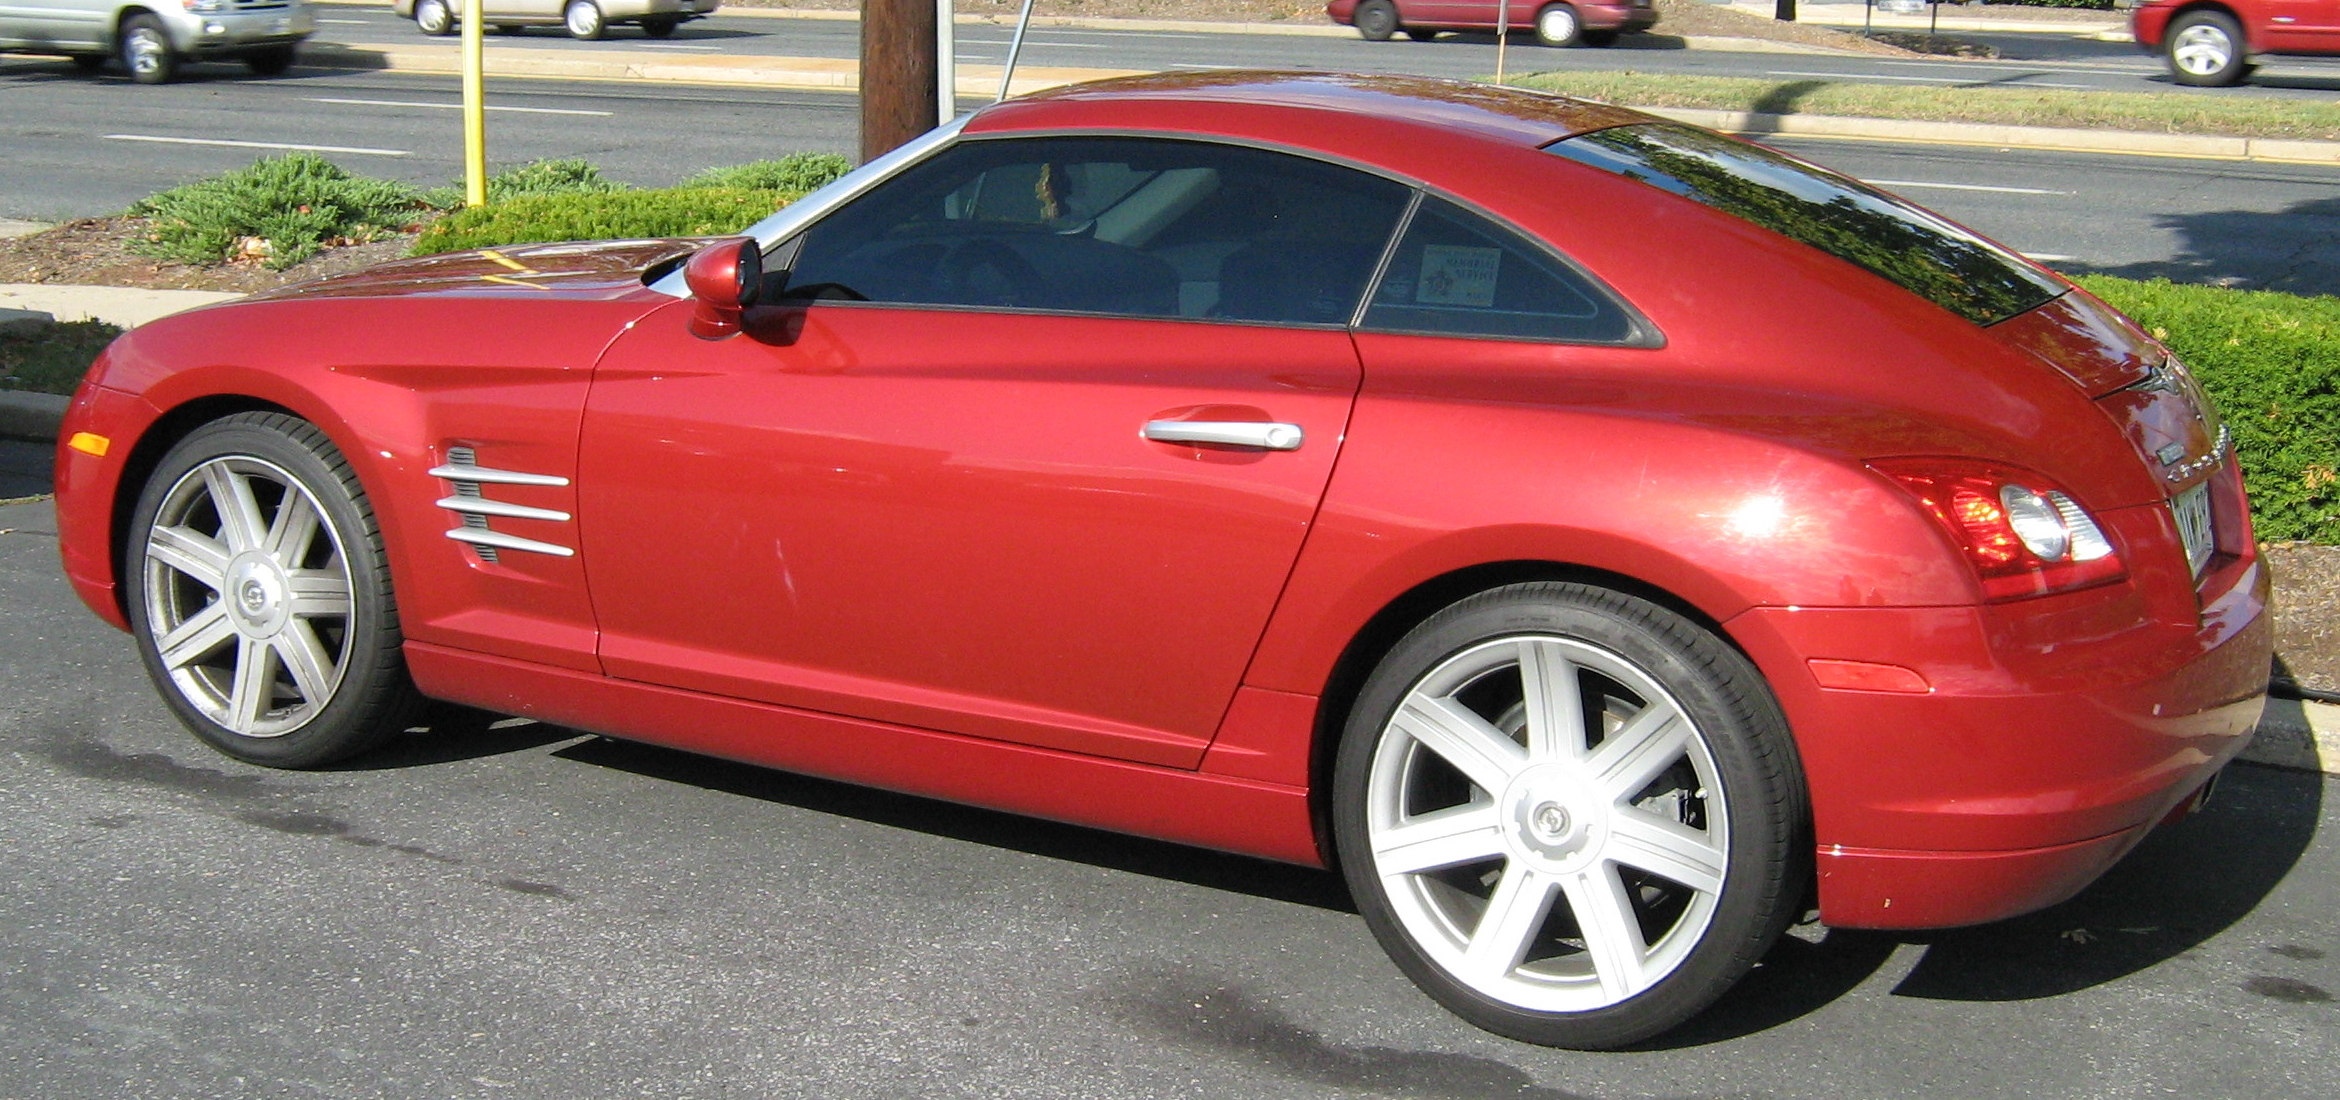 Chrysler Crossfire #2